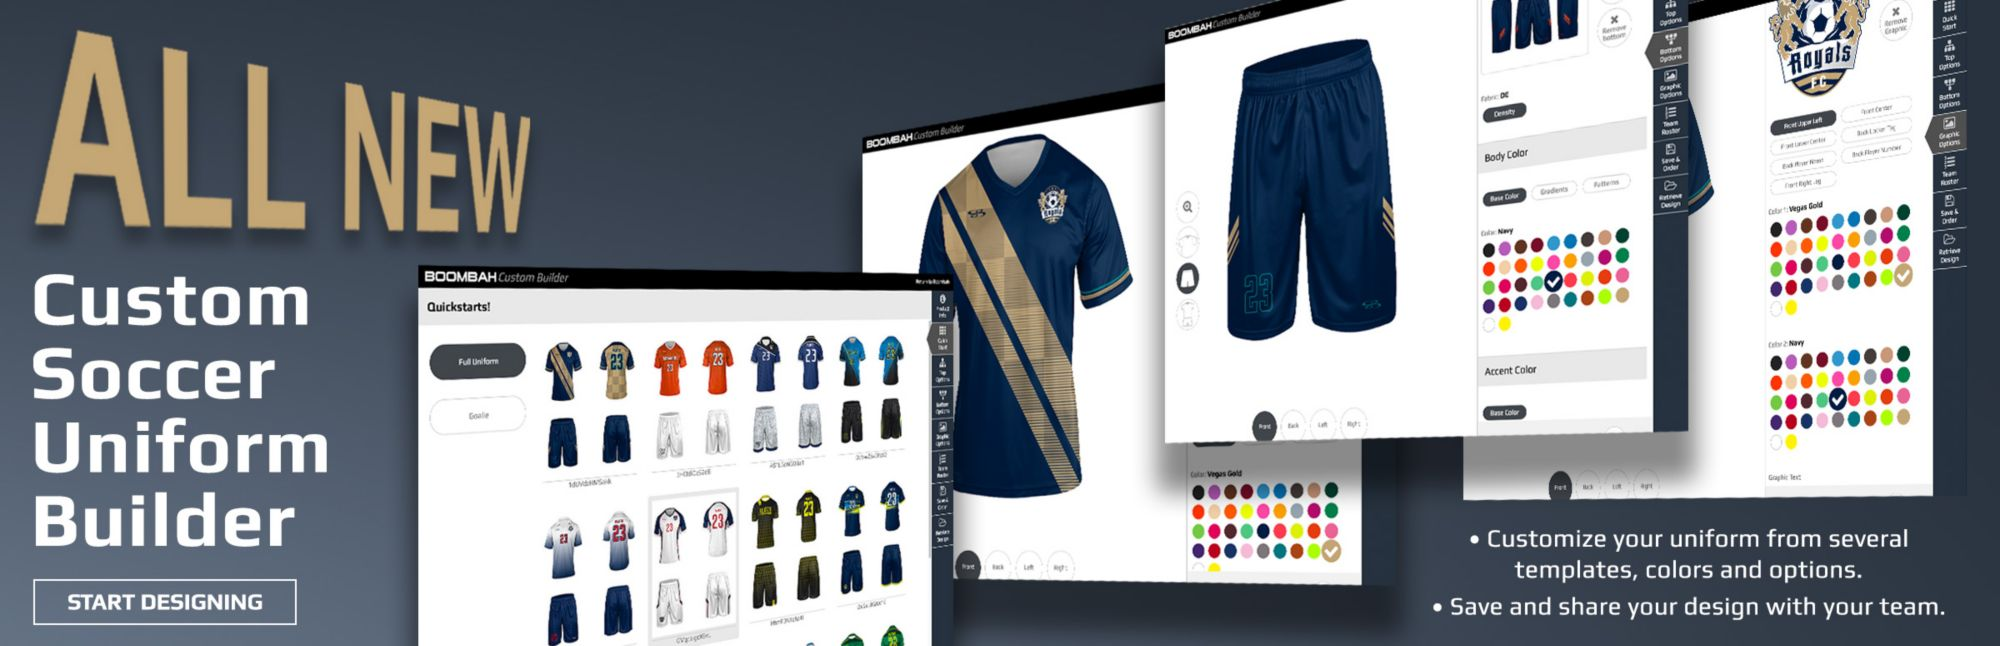 Boombah Custom Soccer Uniform Builder